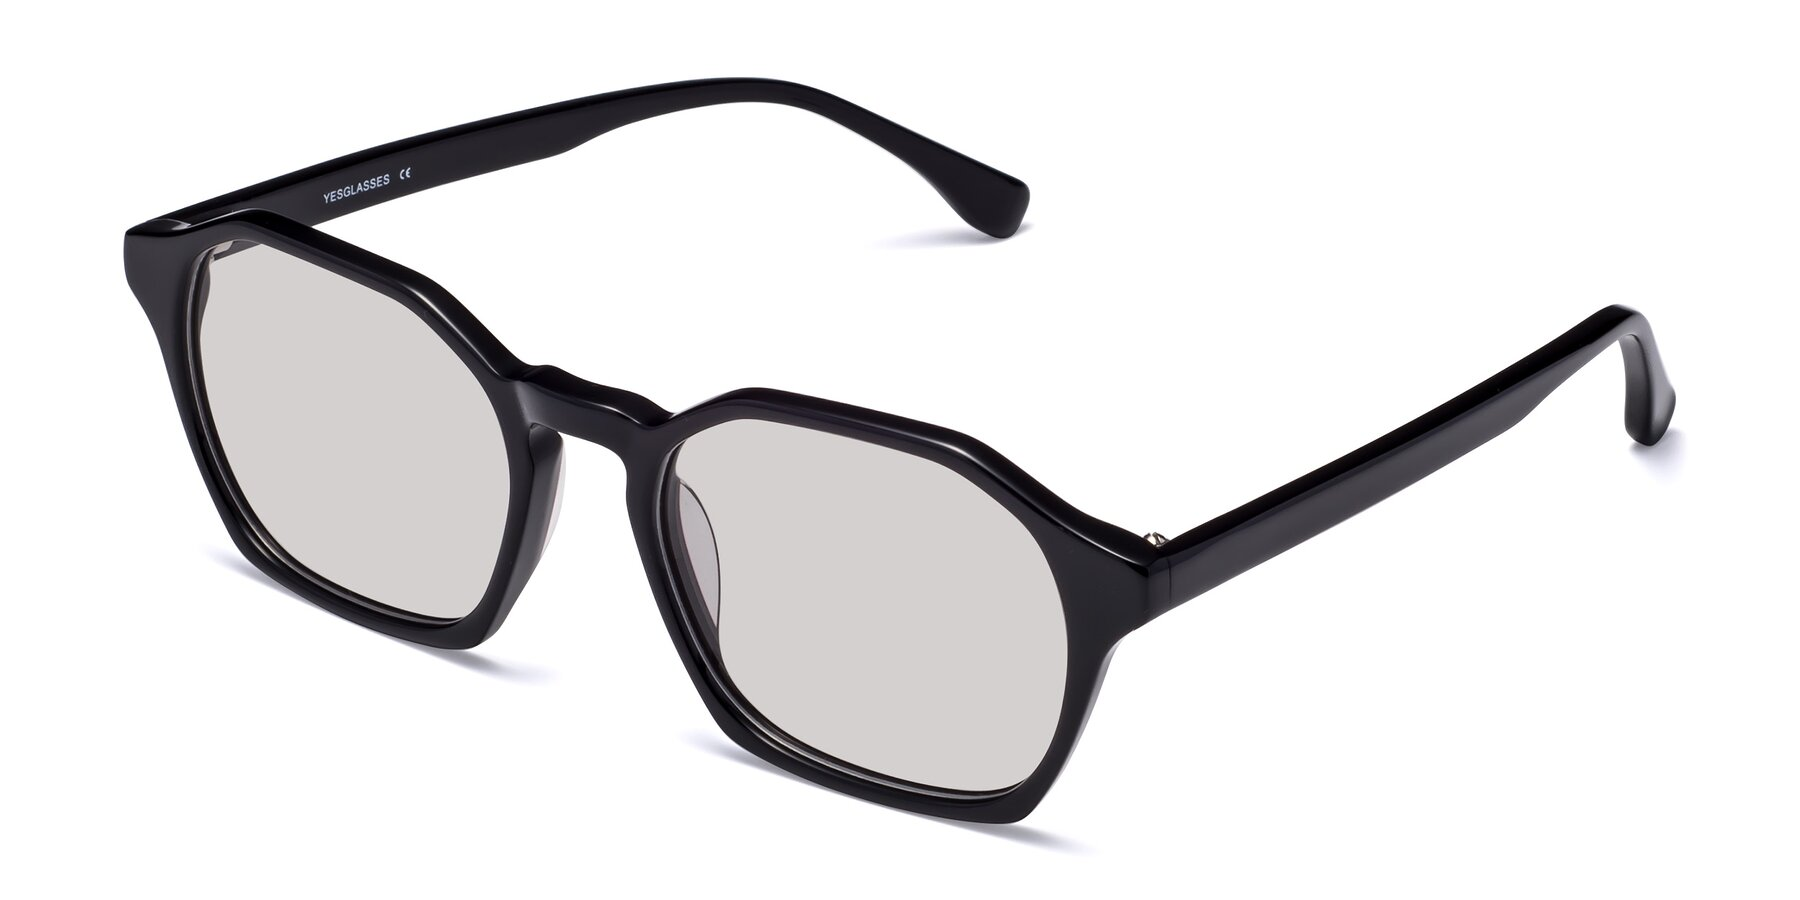 Angle of Stoltz in Black with Light Gray Tinted Lenses